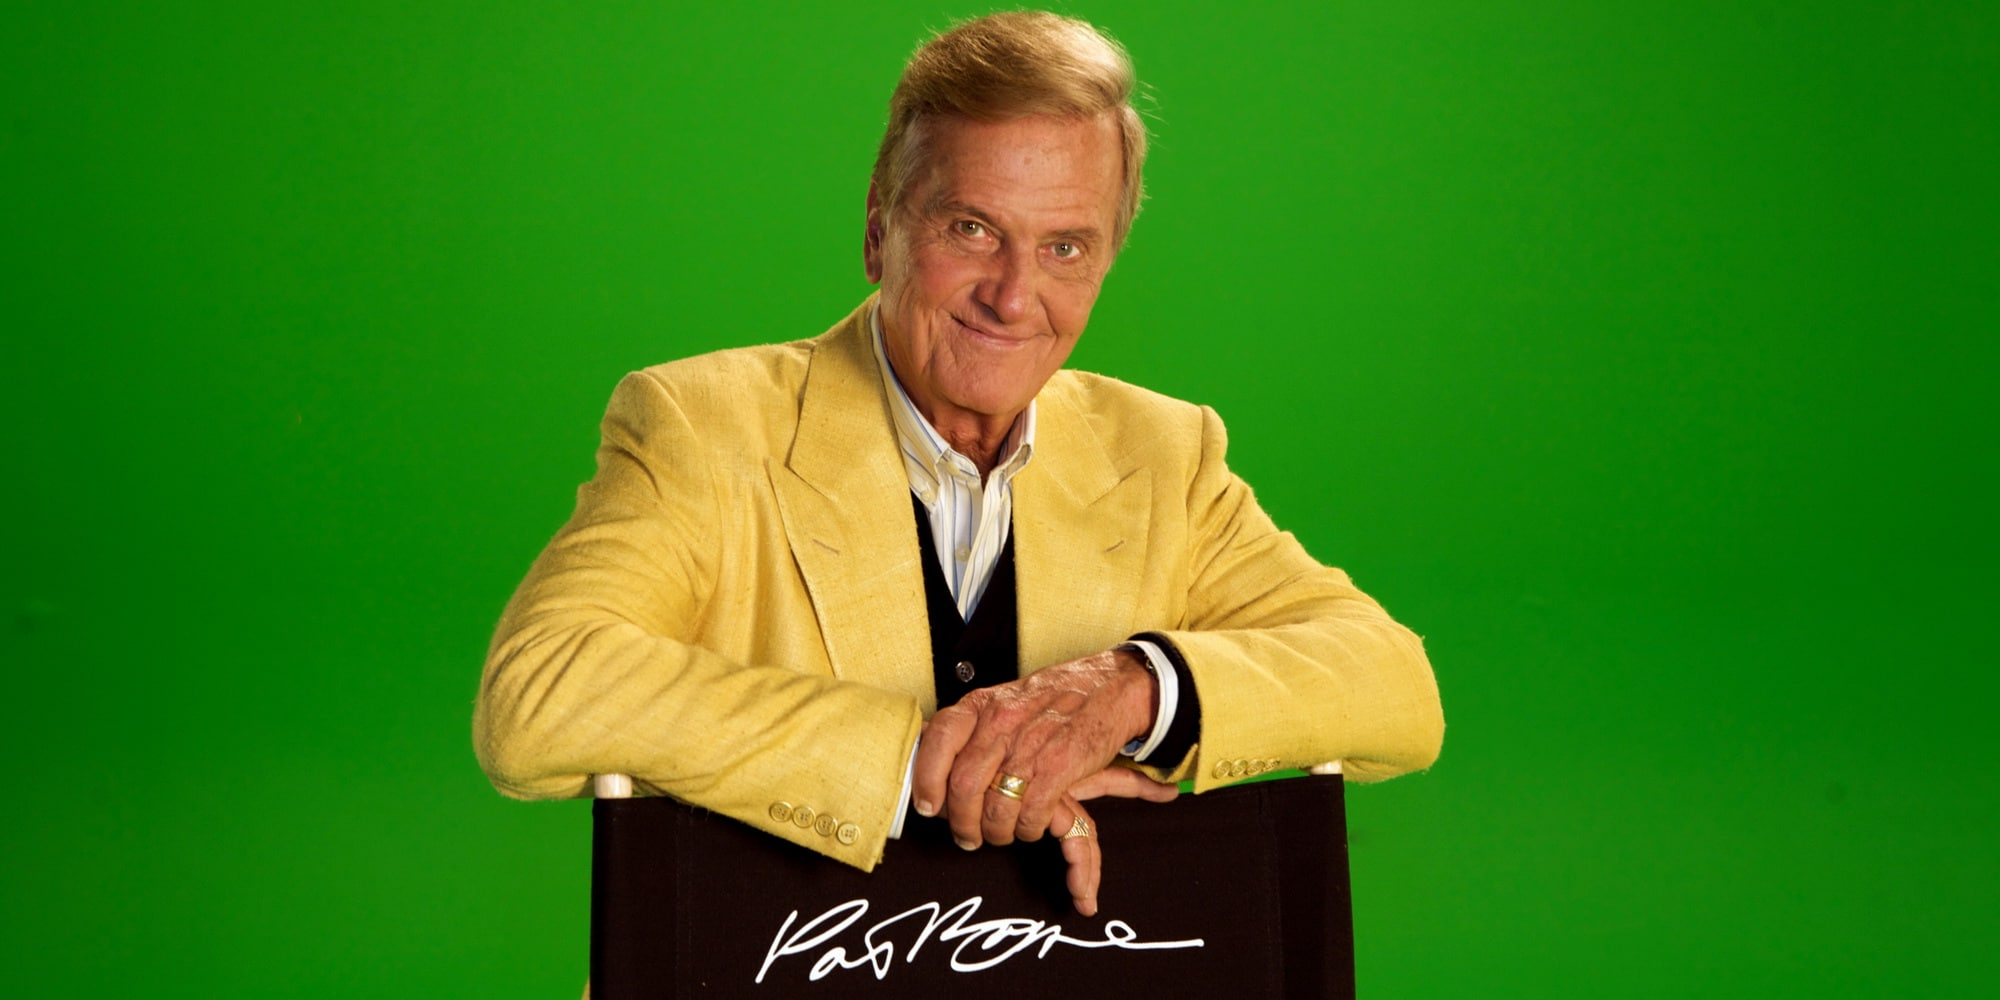 American Playboy The Hugh Hefner Story Wiki pat boone net worth 2018: wiki, married, family, wedding